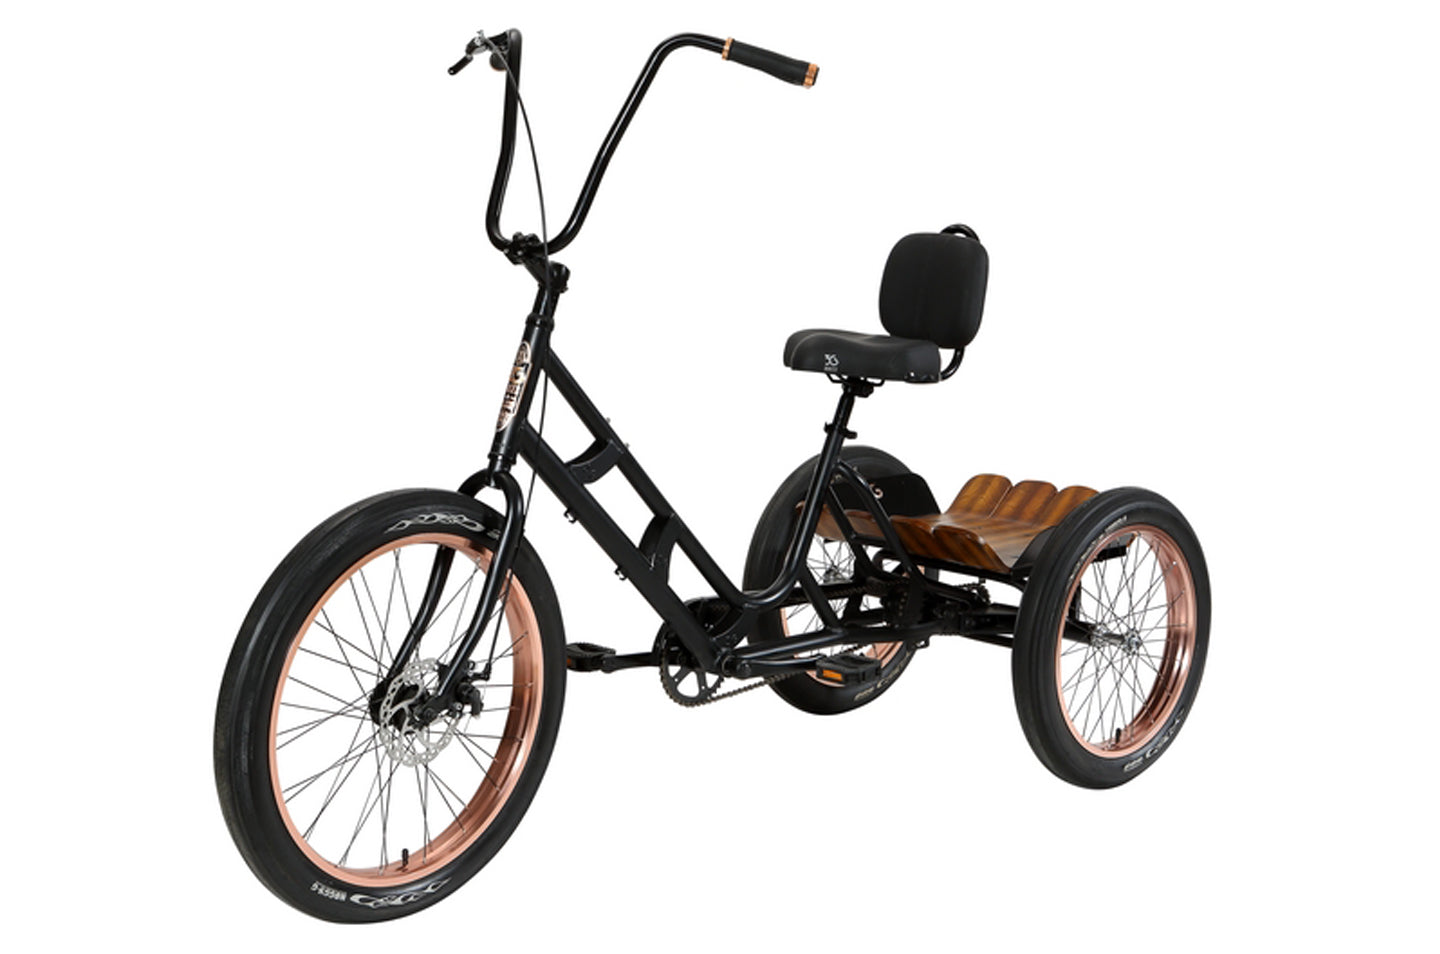 3G ASBURY DLX THREE WHEEL BIKE, BLACK with COPPER WHEELS